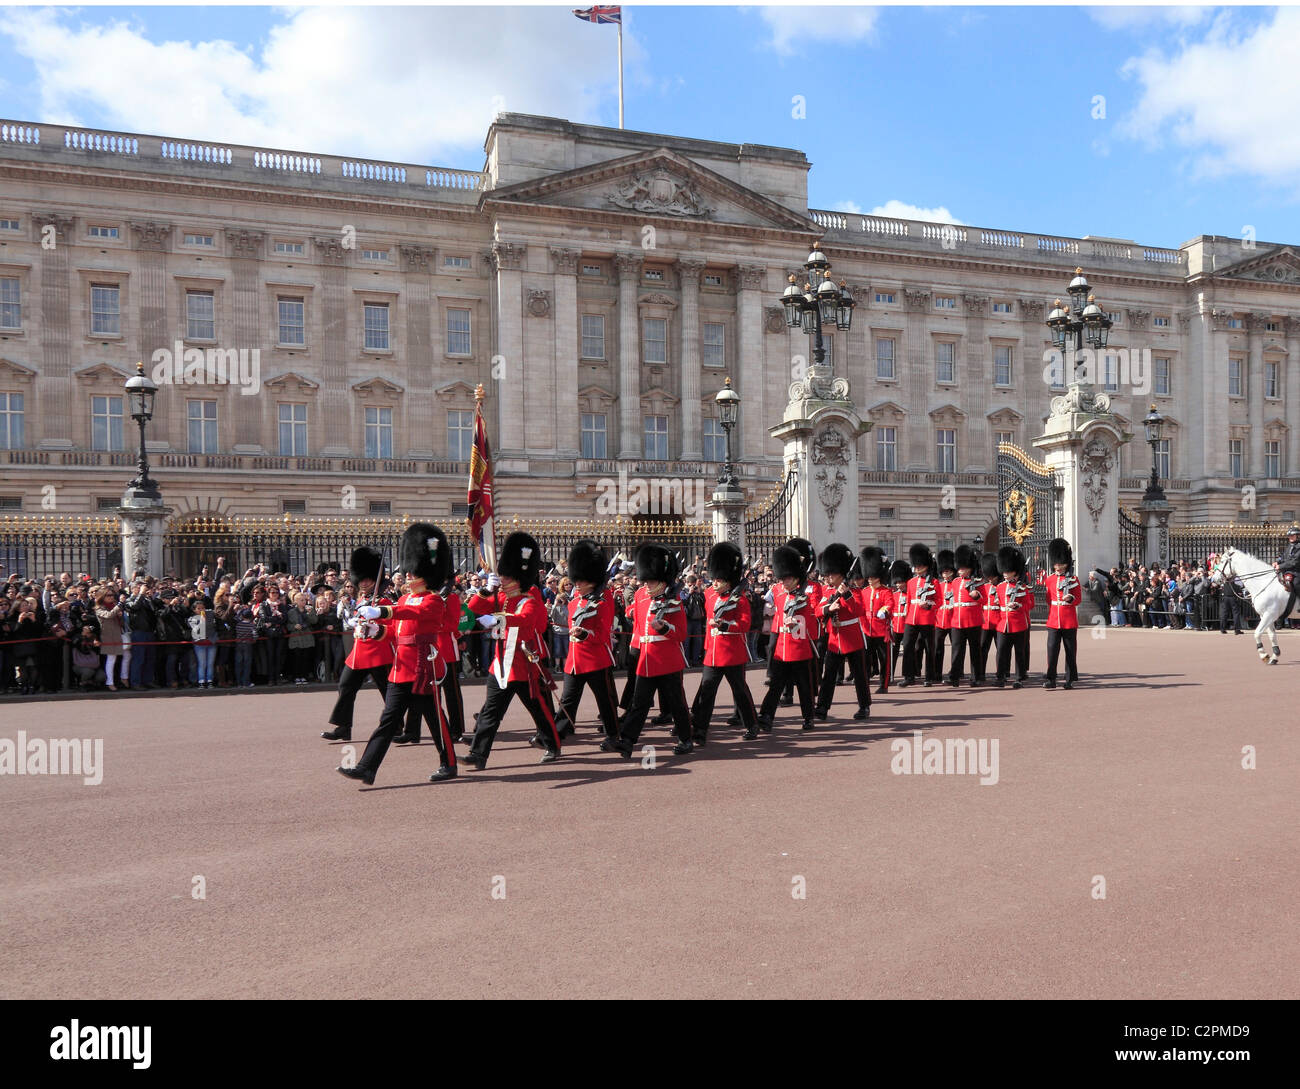 Changing the Guard at Buckingham Palace in London Stock Photo